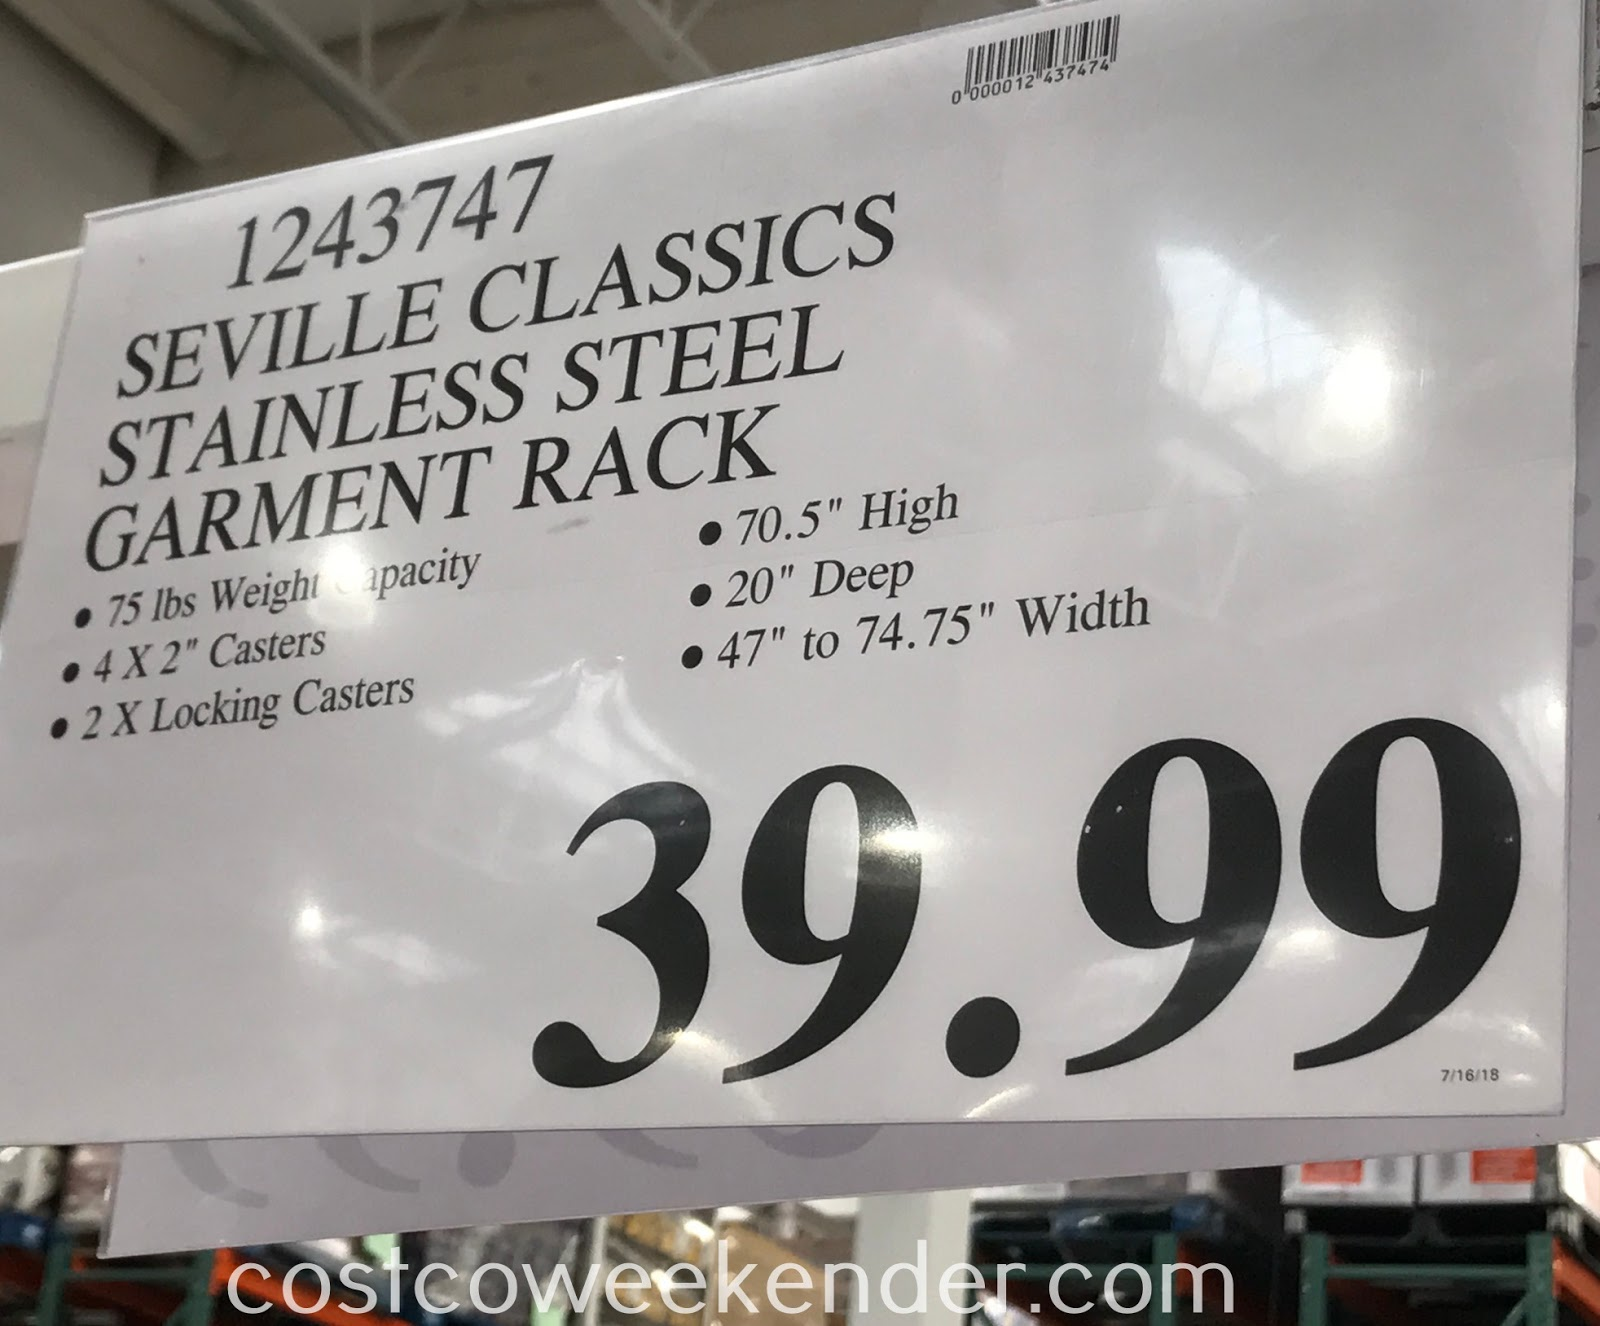 Deal for the Seville Classics Stainless Steel Garment Rack at Costco